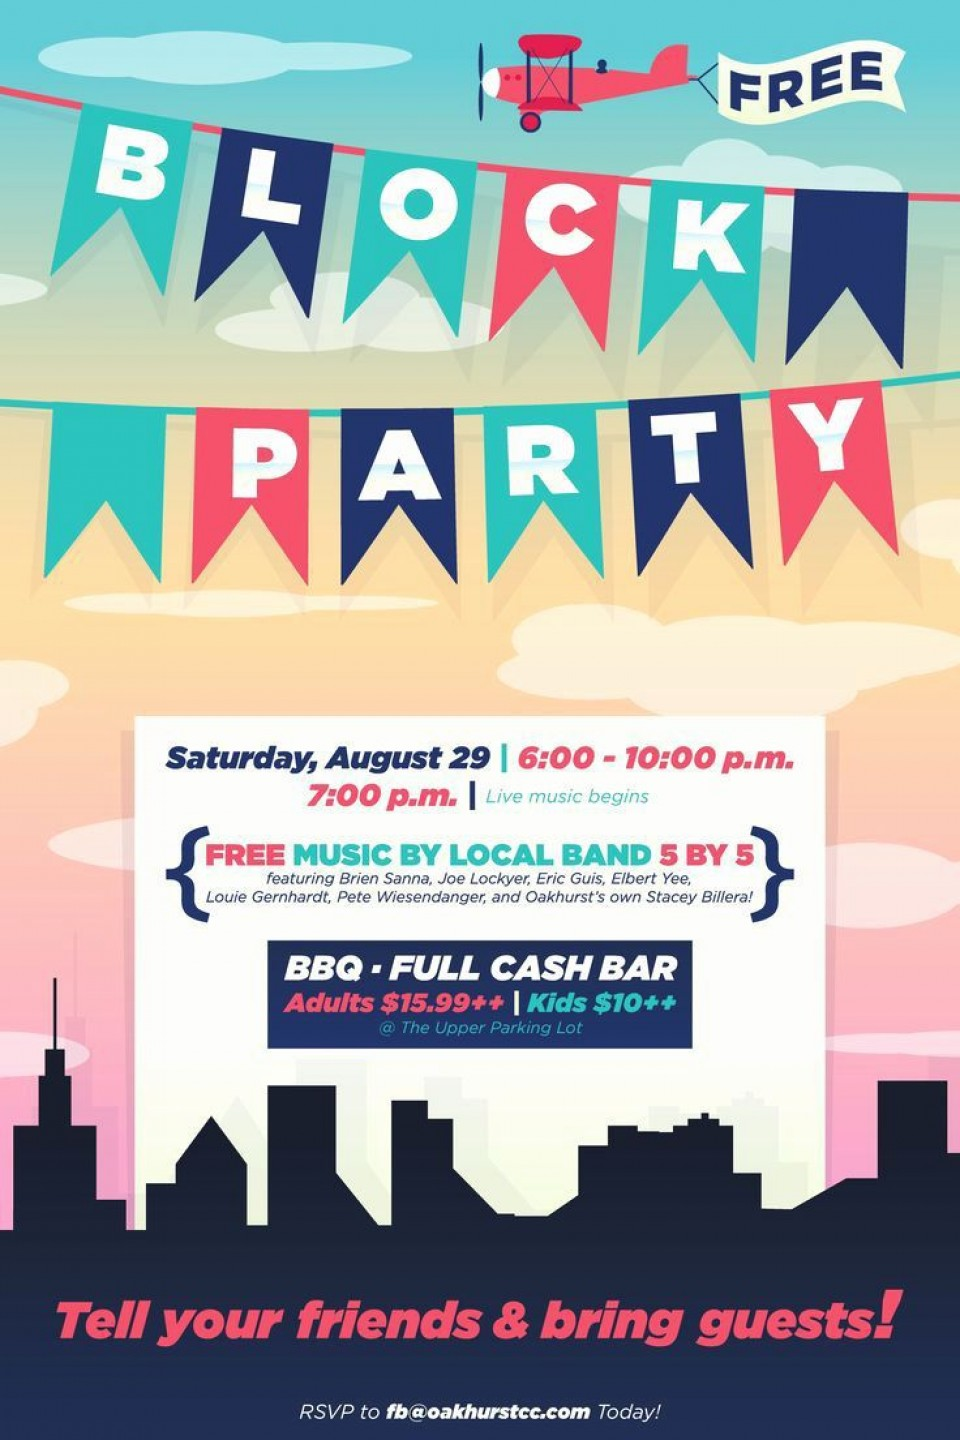 003 Unforgettable Block Party Flyer Template Concept  Free960